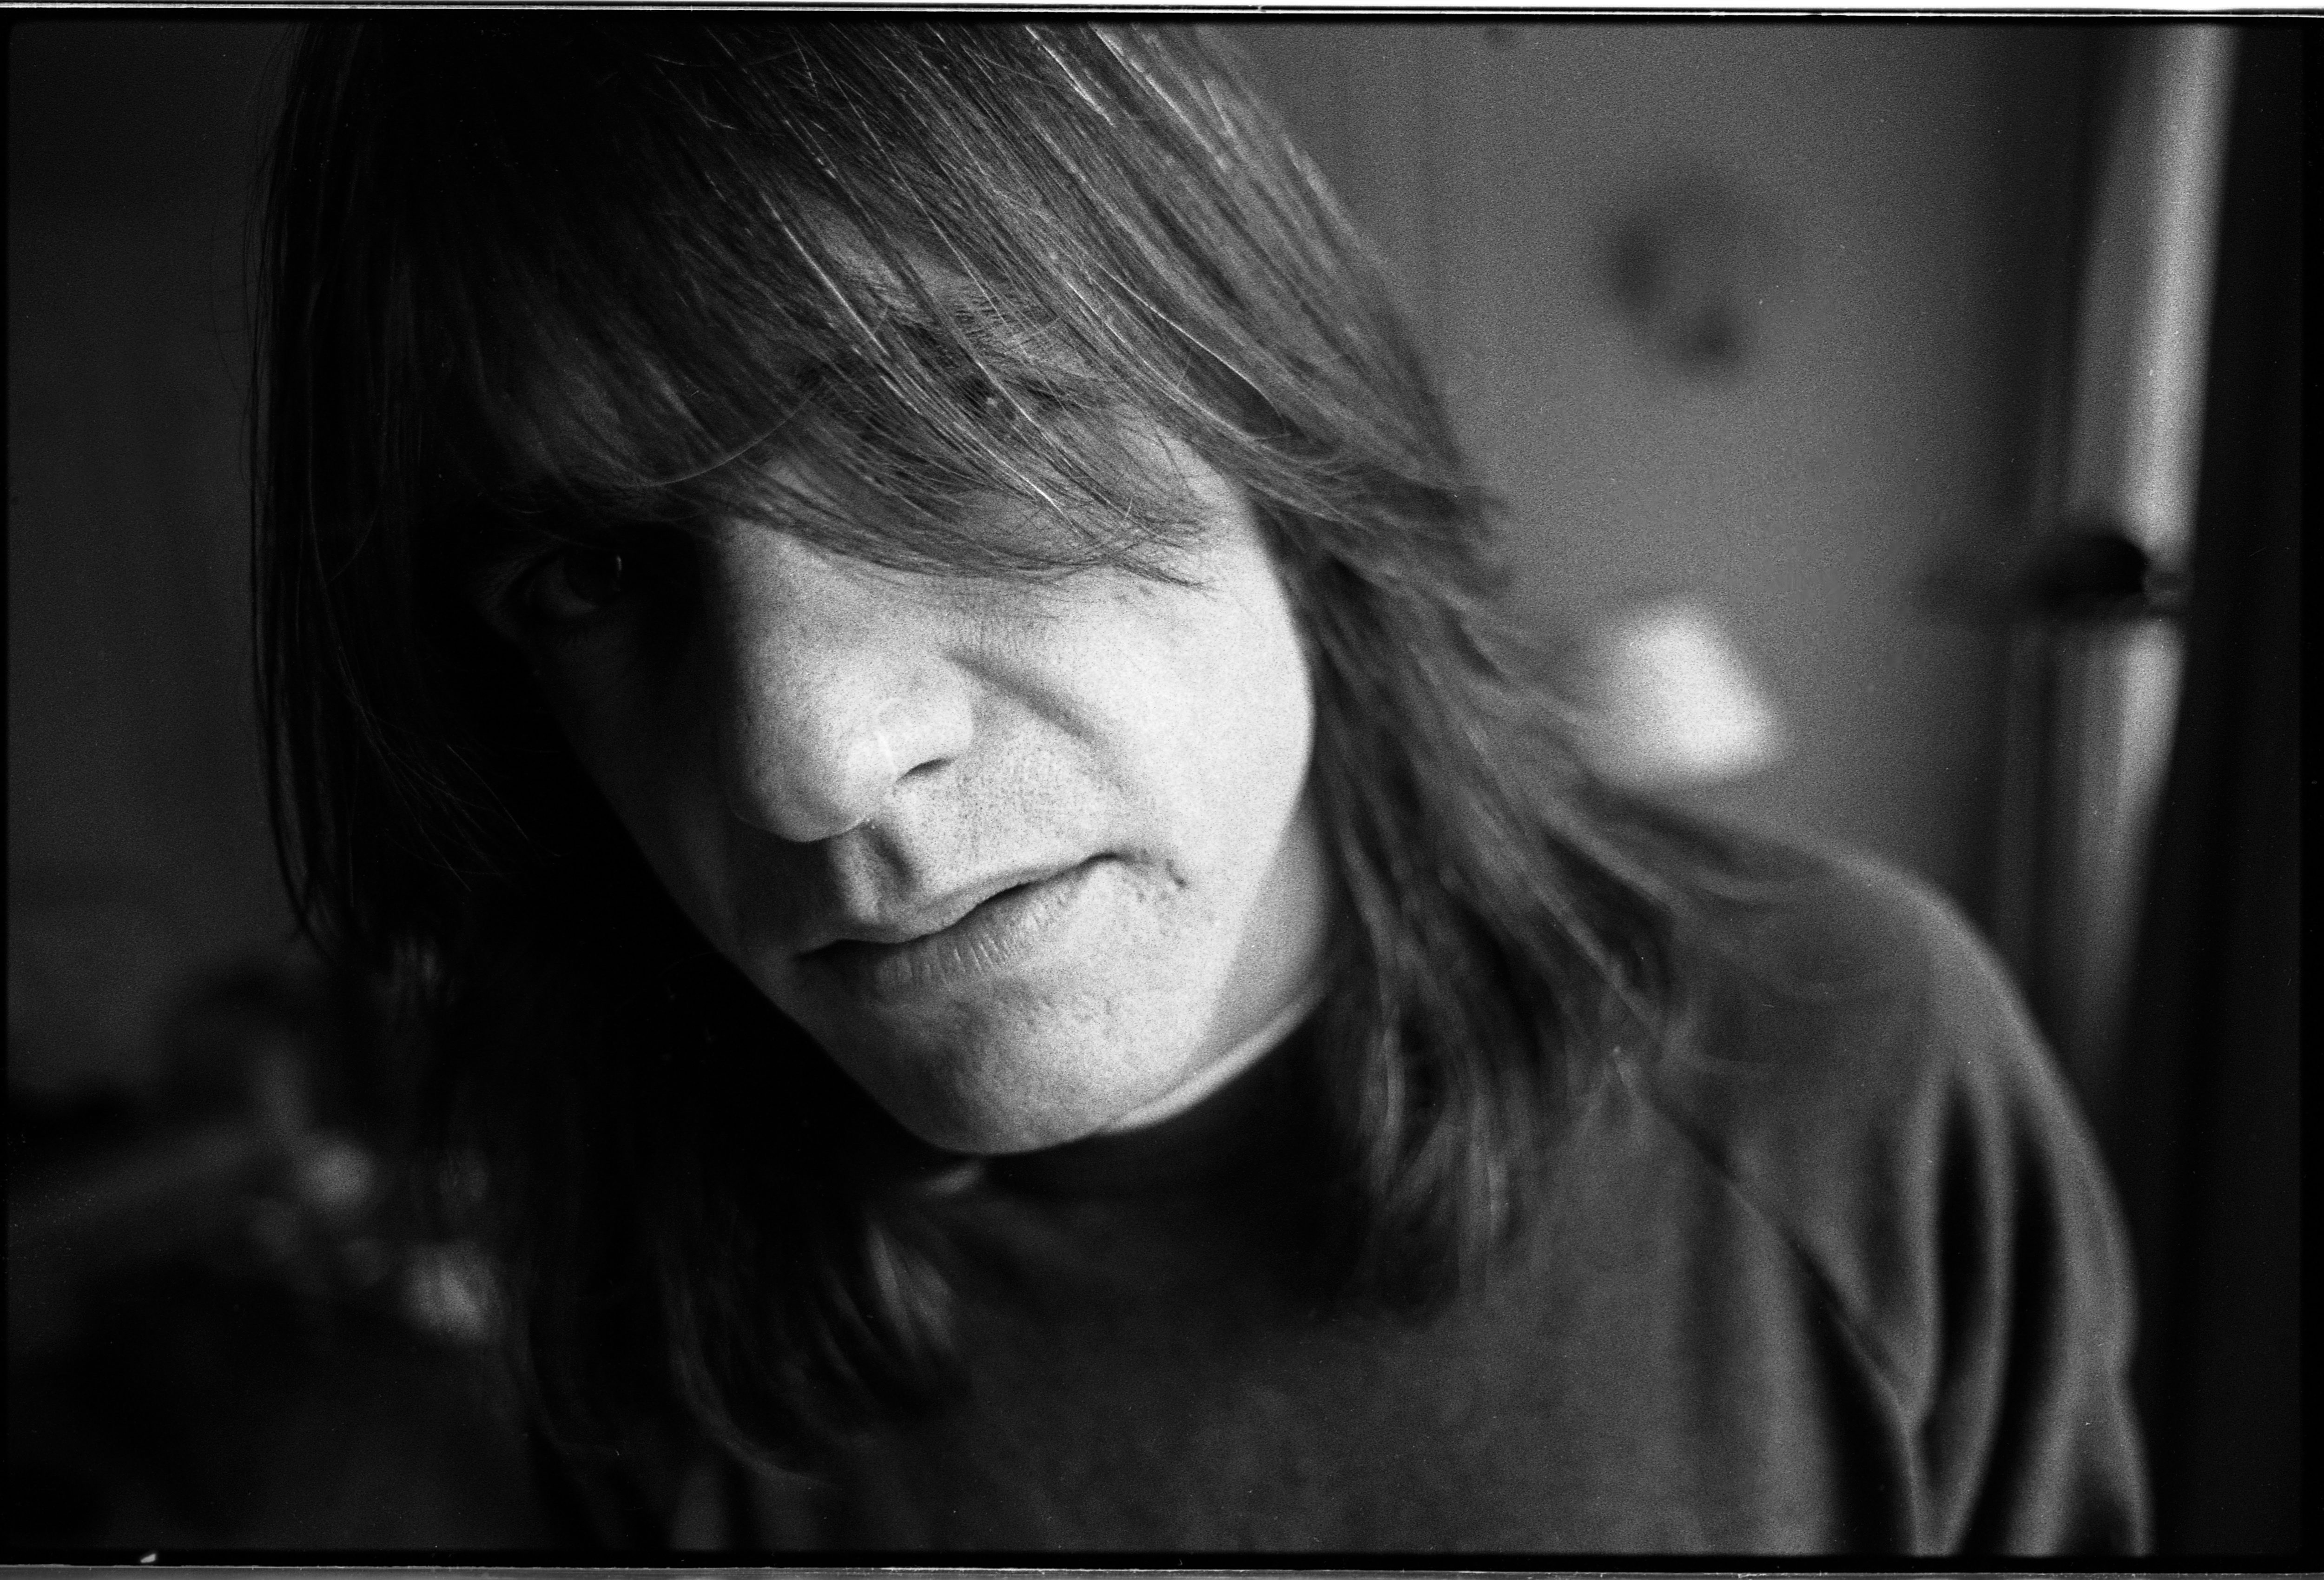 Malcolm Young of AC/DC, portrait, Germany, 1995. (Photo by Martyn Goodacre/Getty Images)